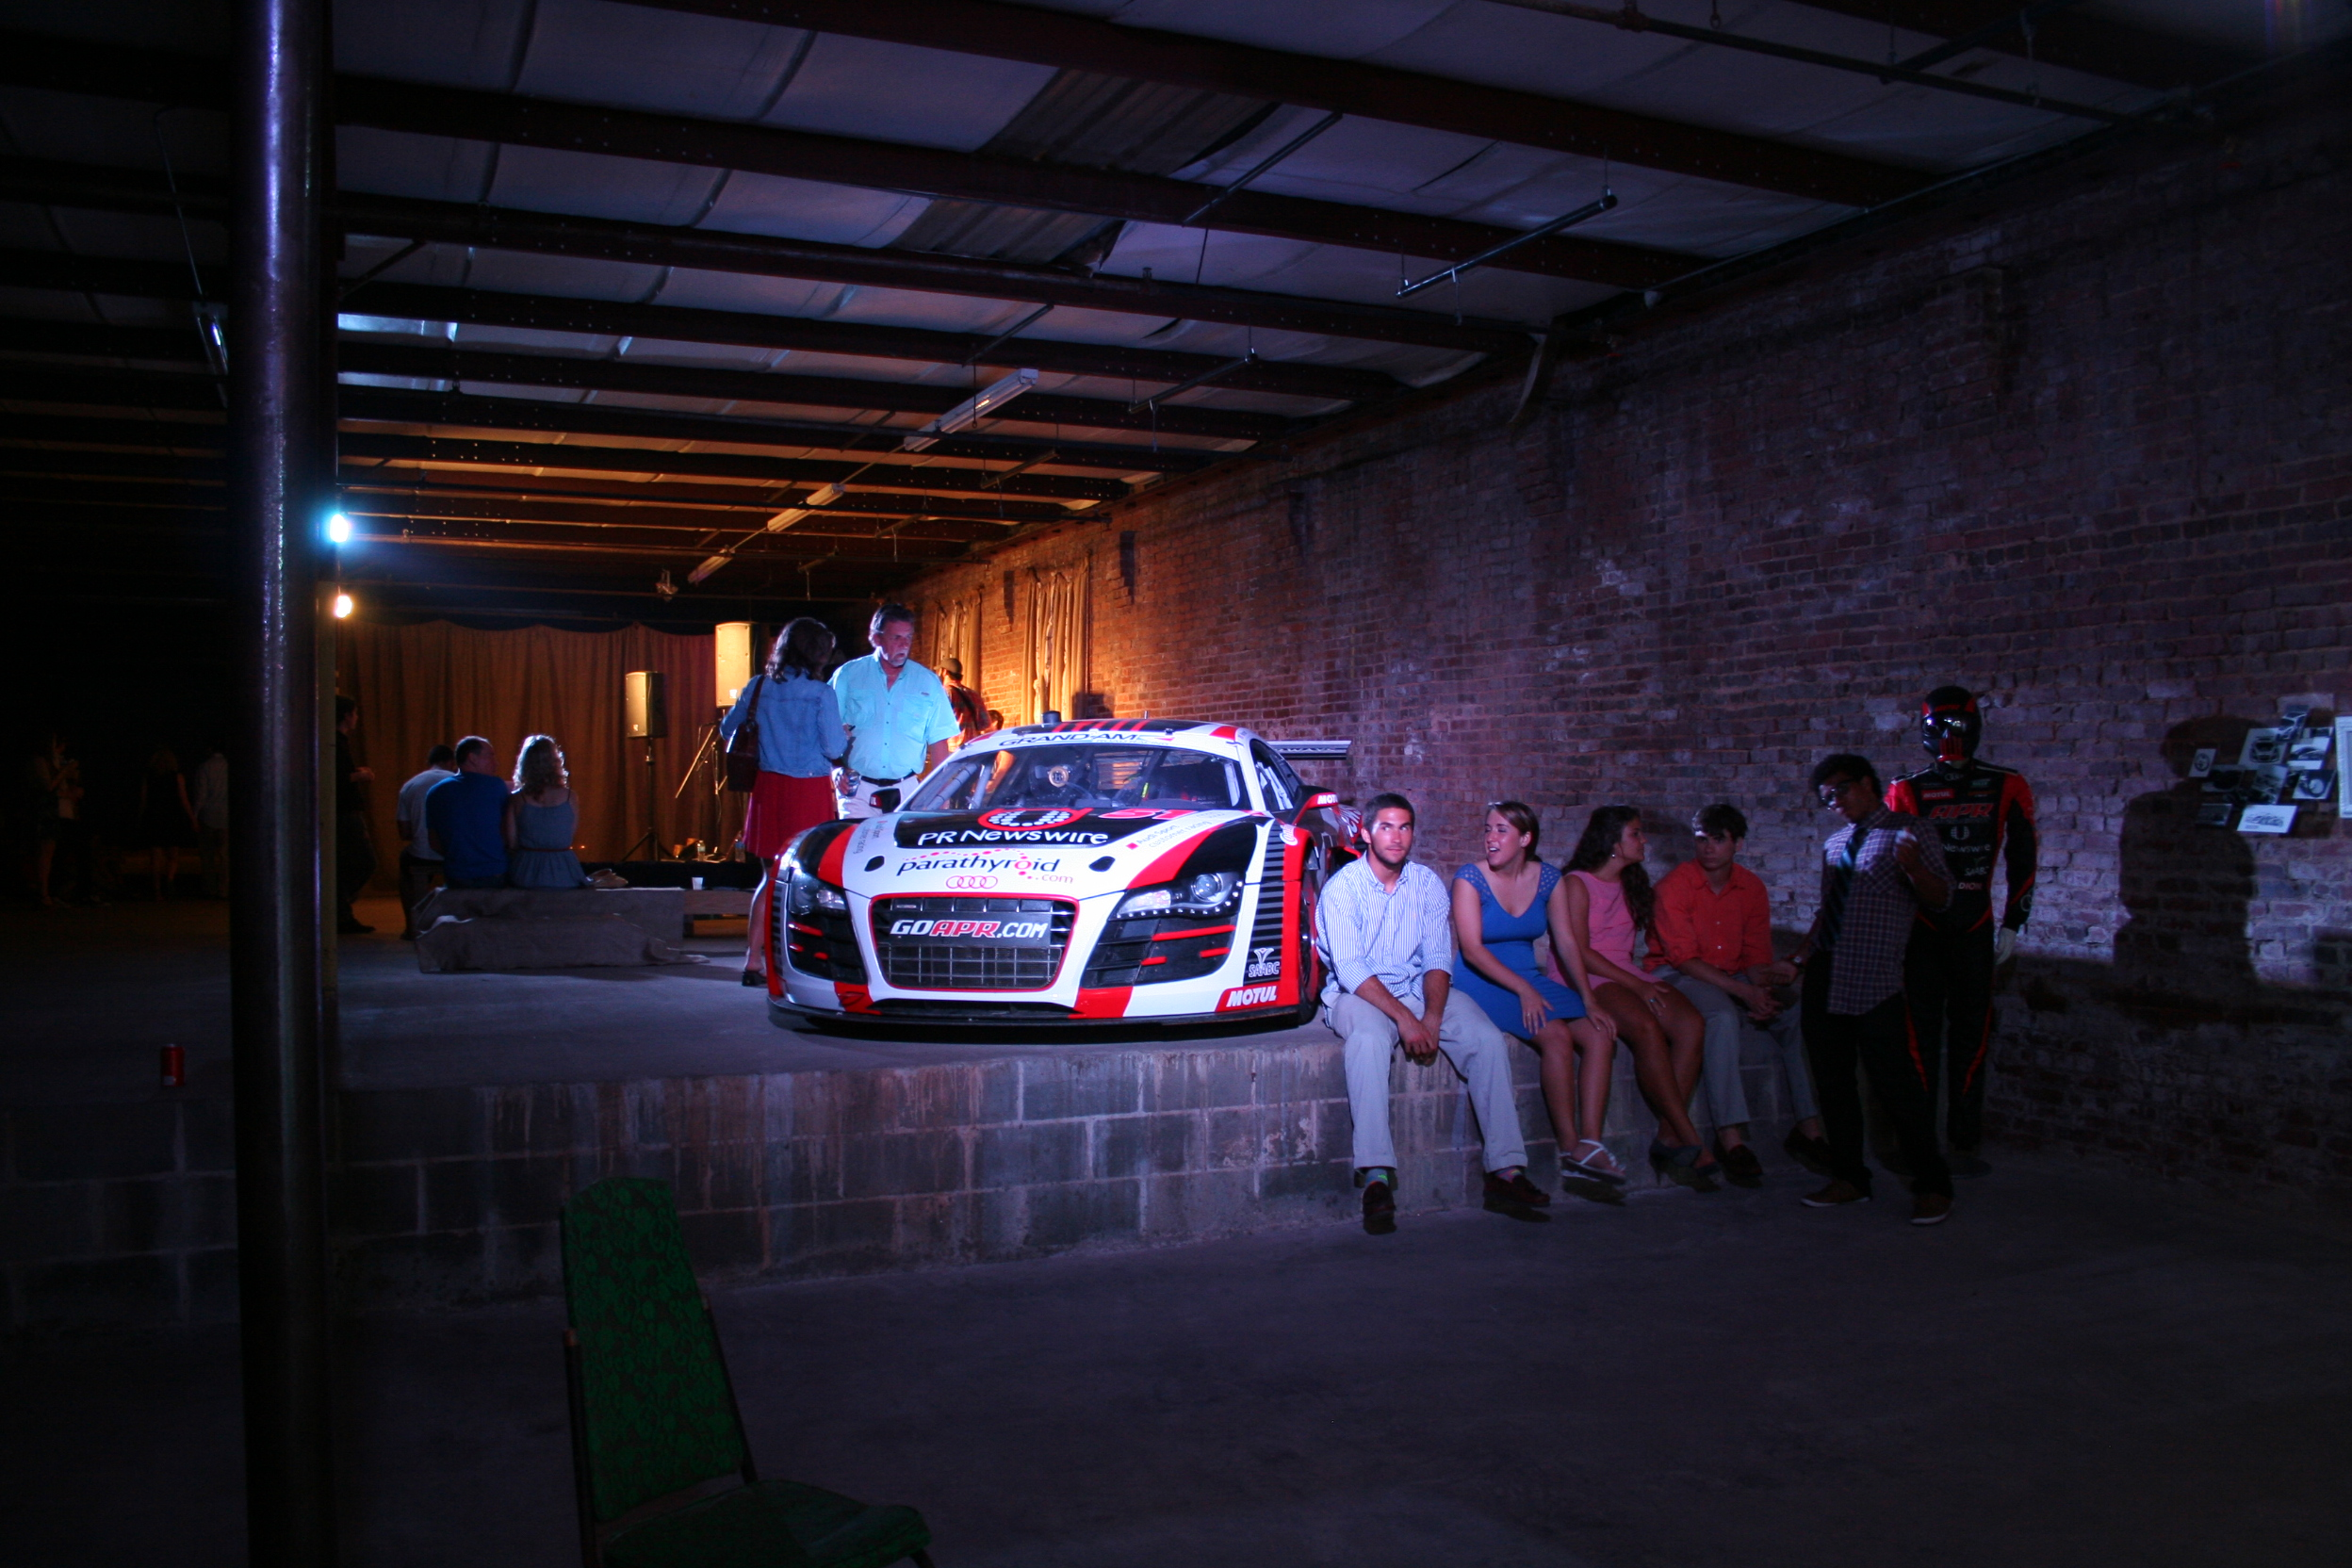 Not sure why there was a racecar in the middle of the warehouse, but i thought it was funny.